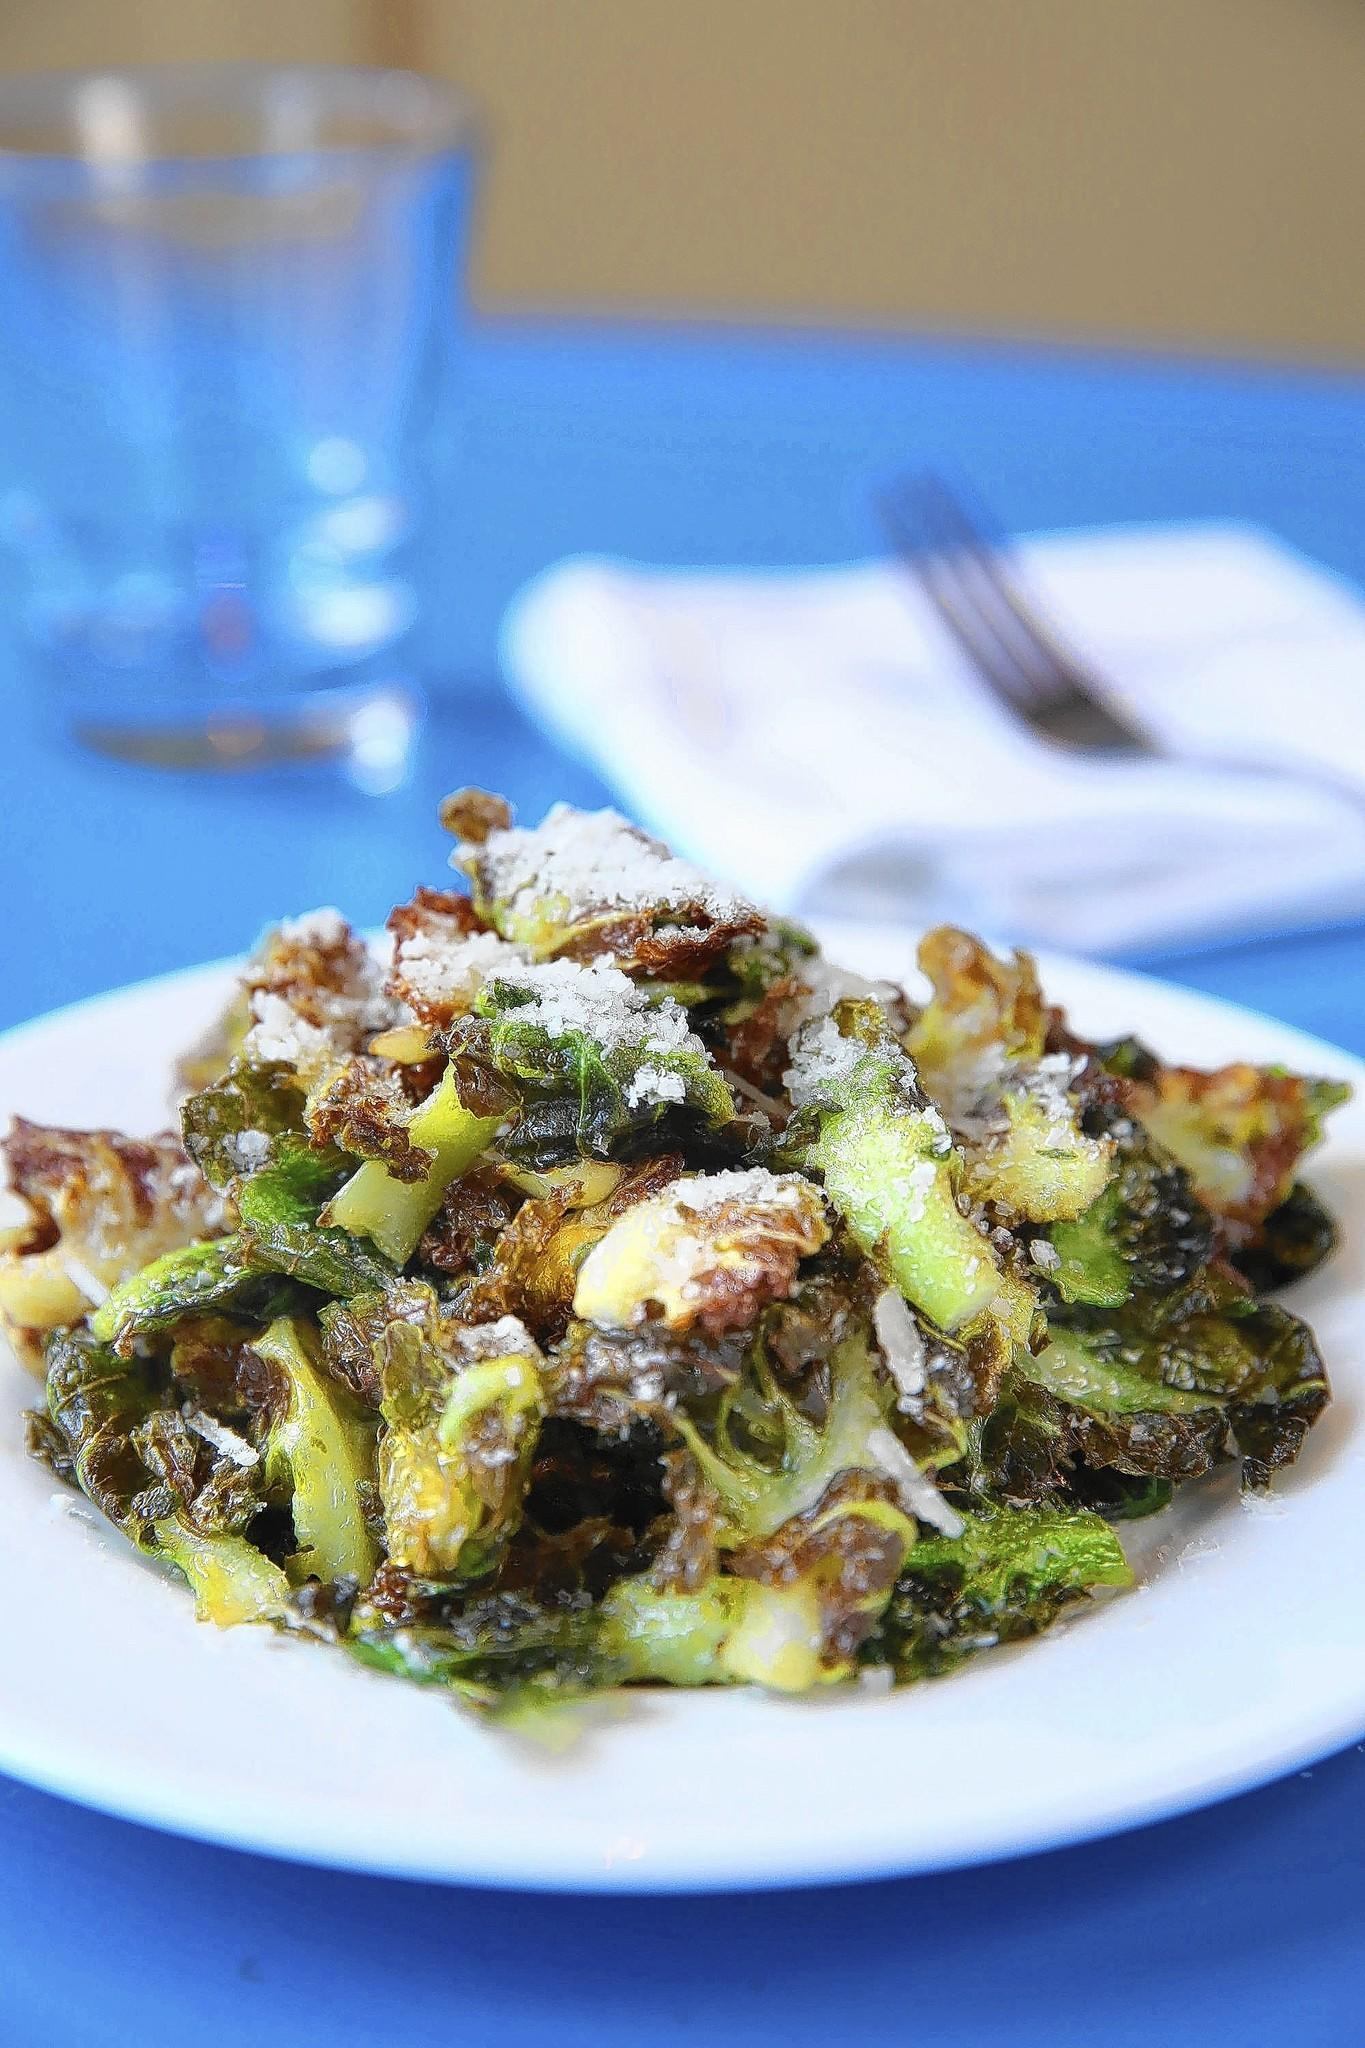 Crispy brussels sprouts with pecorino at Azzurra restaurant in Chicago's Wicker Park neighborhood.